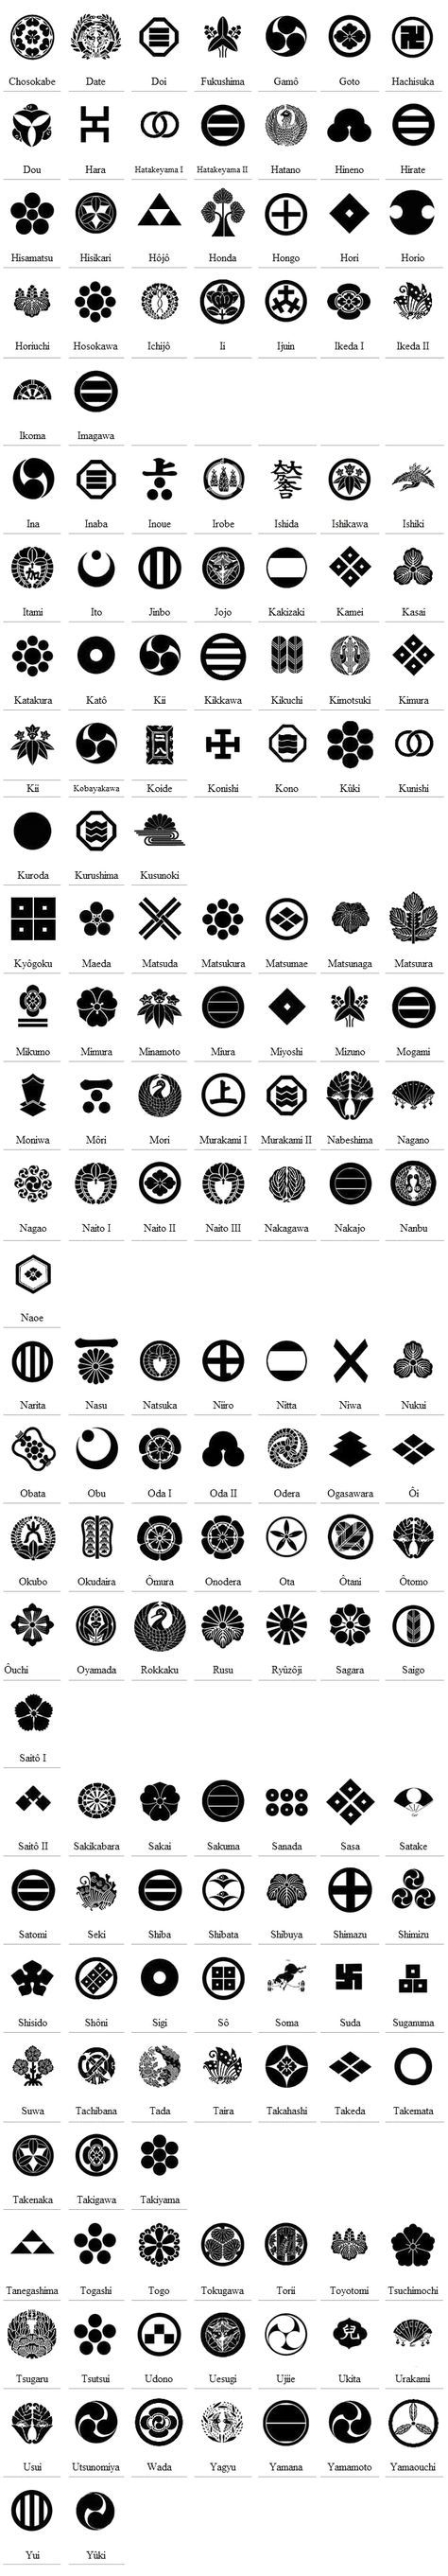 Samurai Crests great for graphic or embroidery patterns finally i found it :)